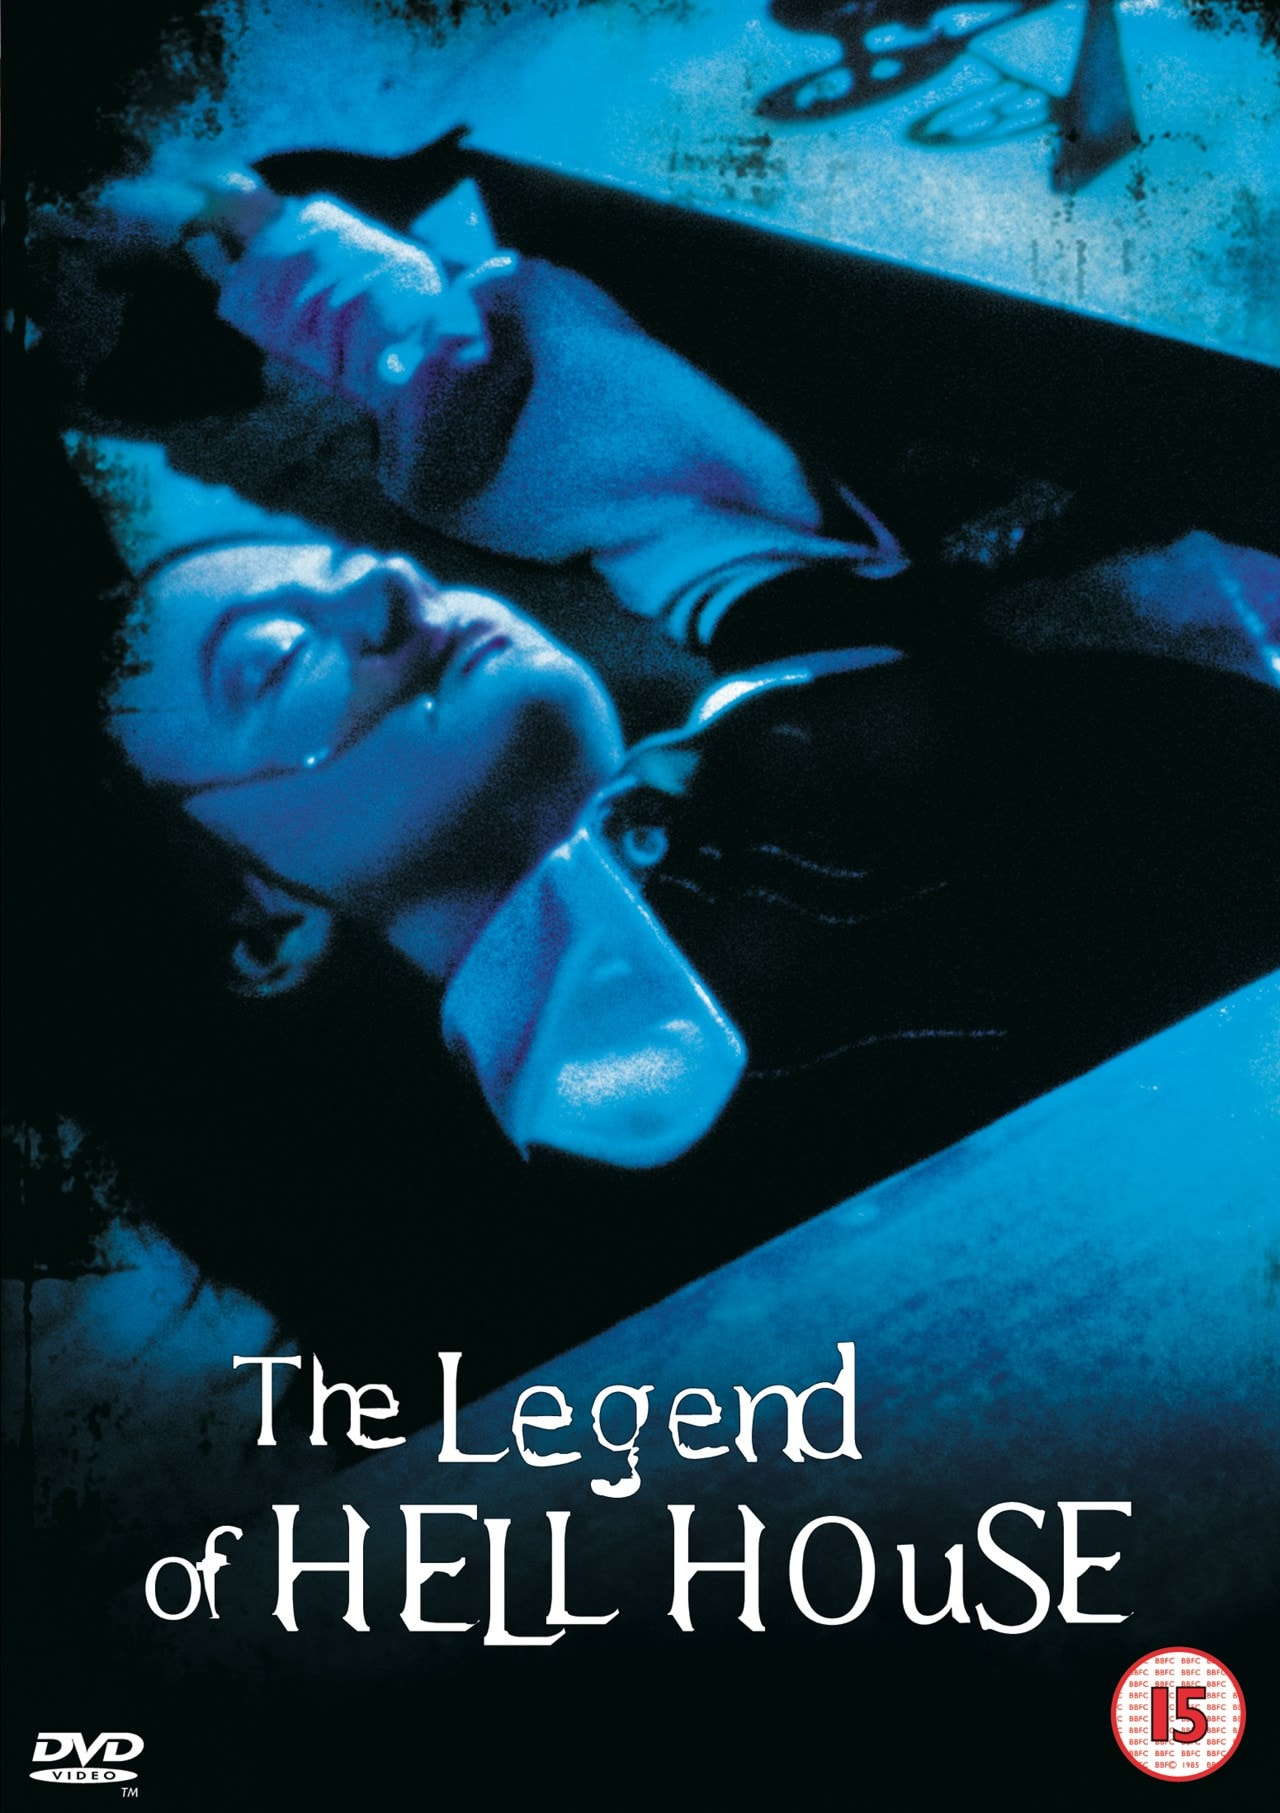 The Legend of Hell House - 1